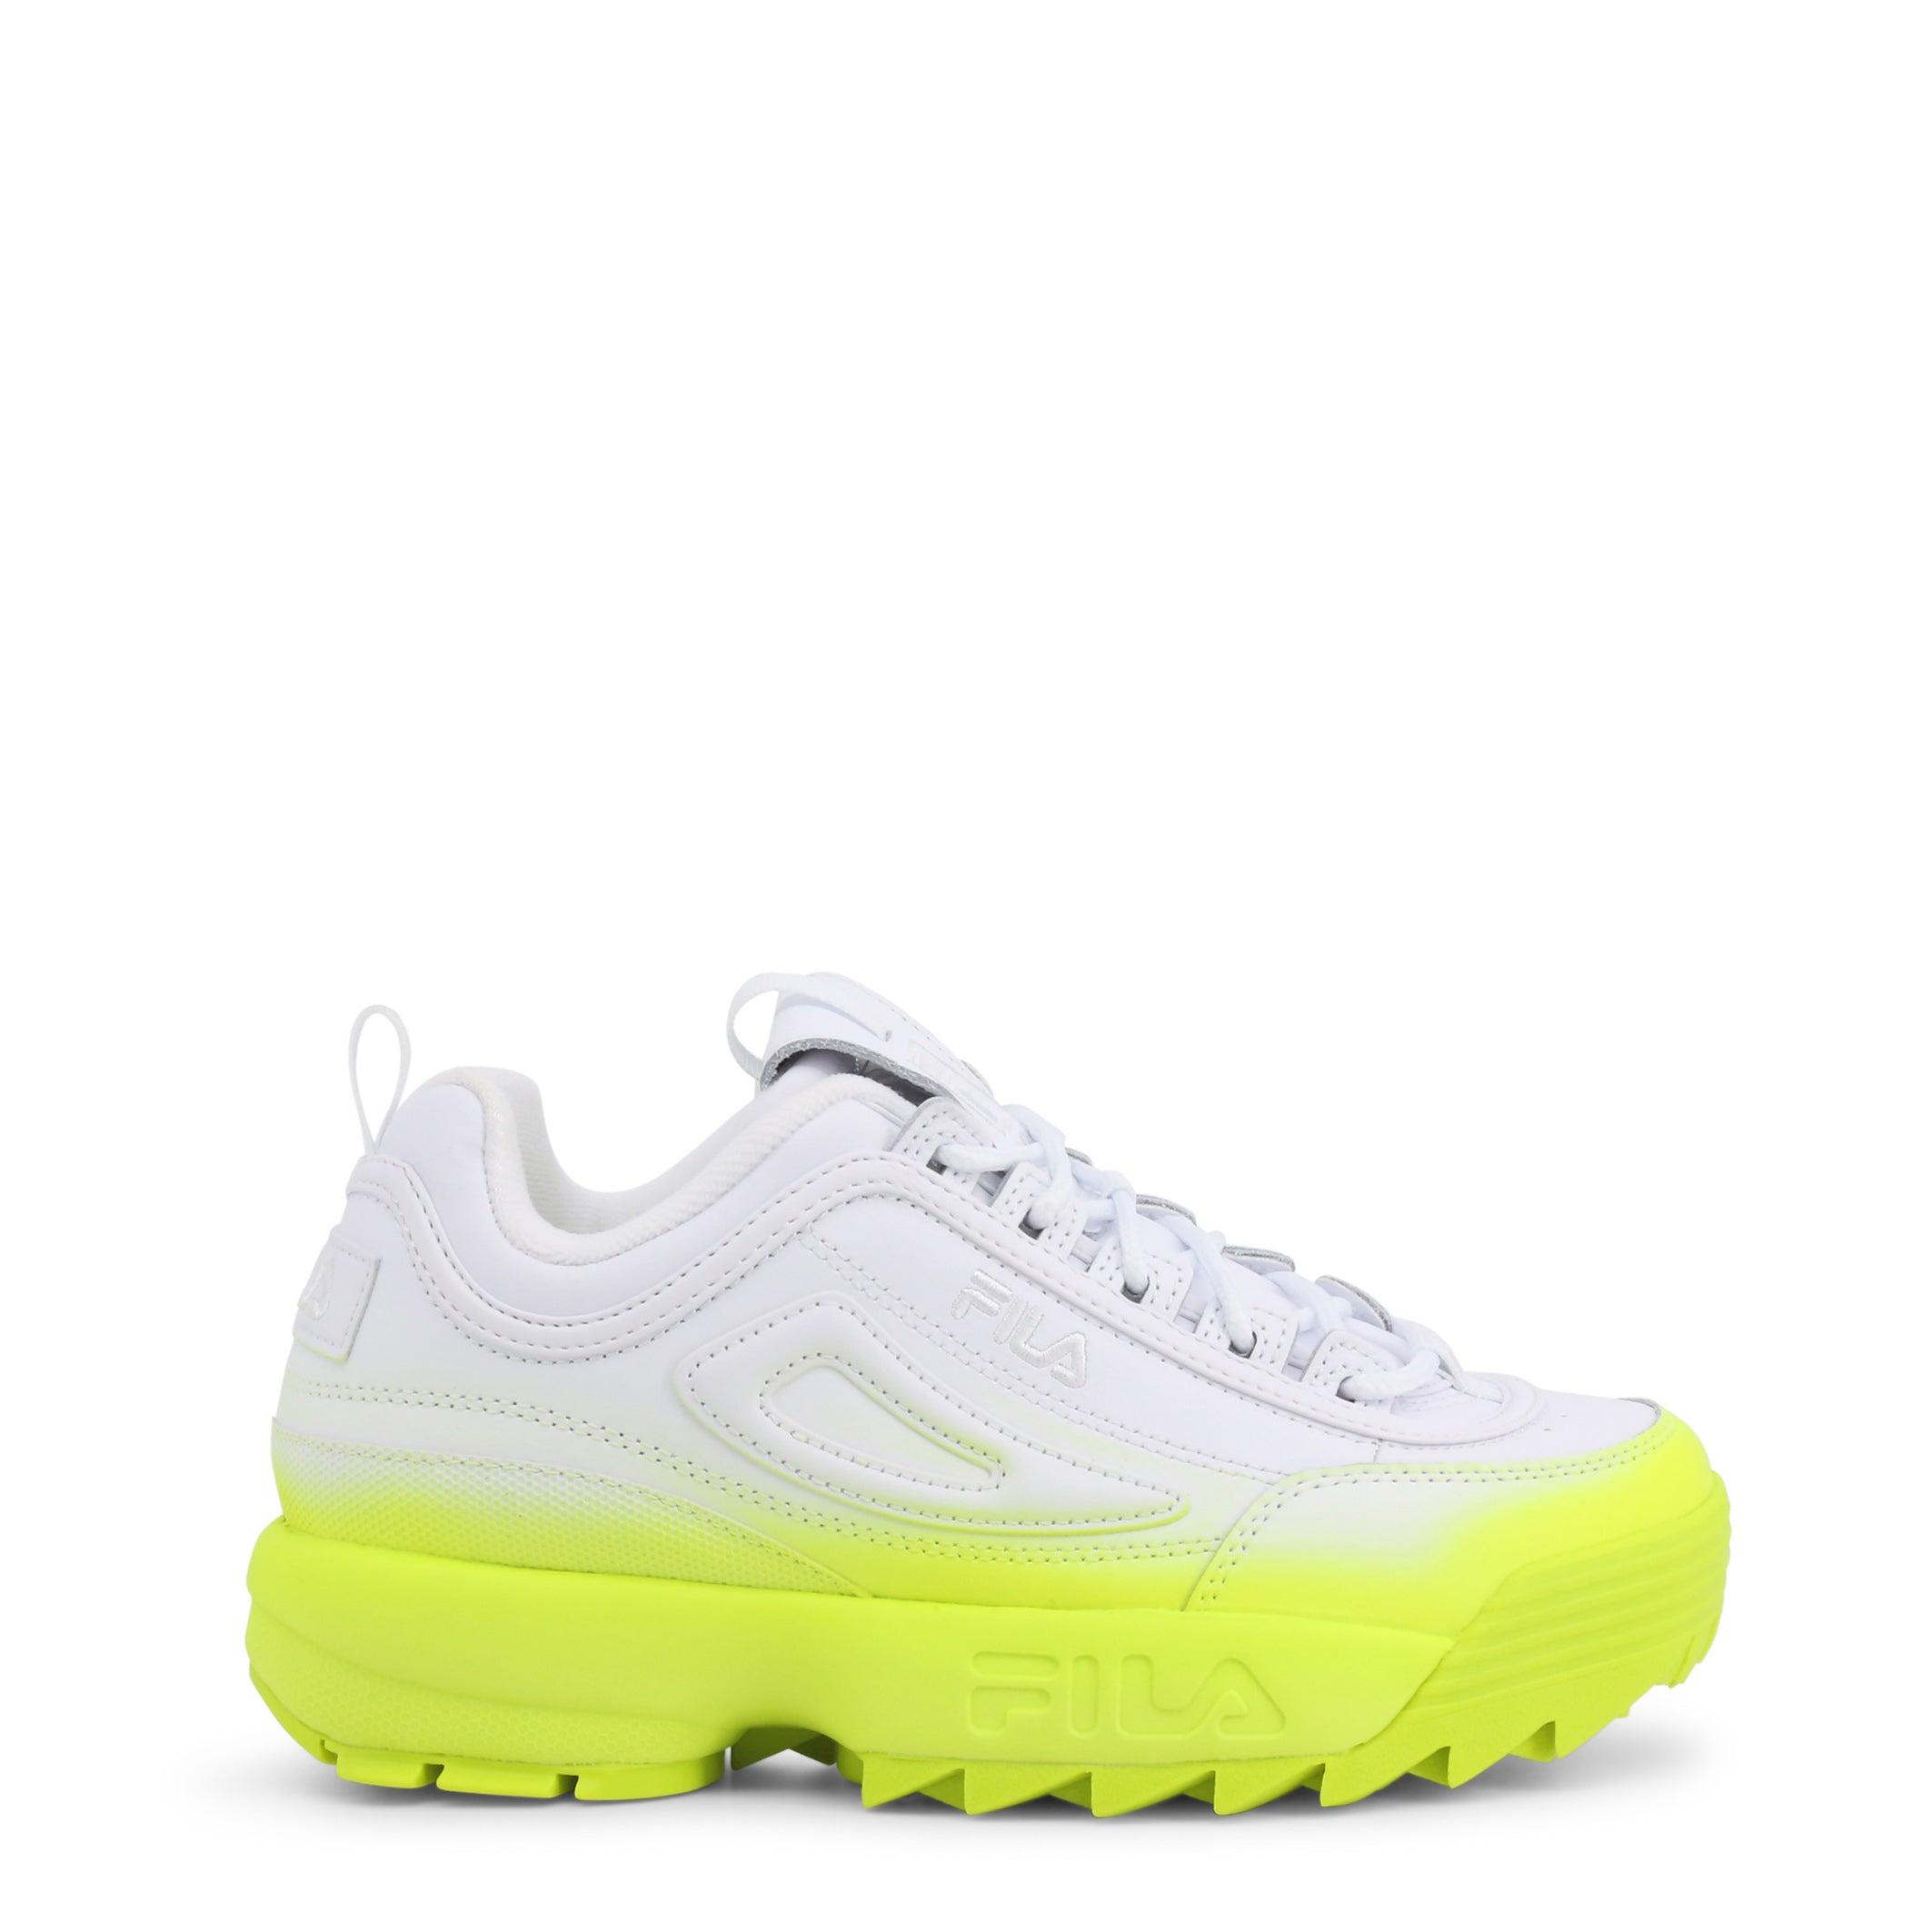 Fila - DISRUPTOR-2-BRIGHTS-FADE_692 - Women's Sneakers